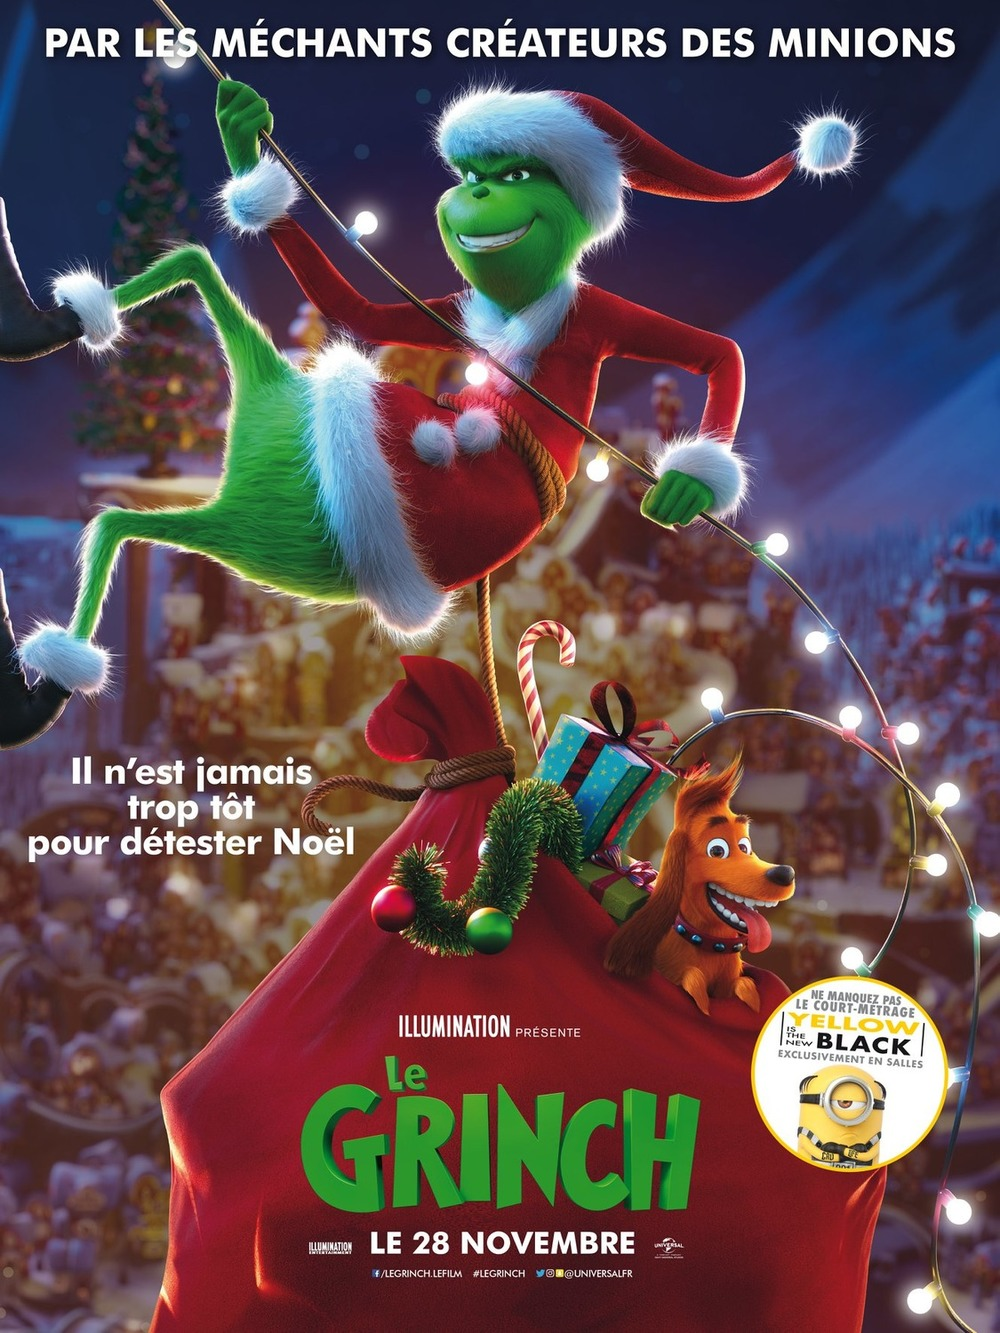 Grinch Who Stole Christmas Full Body Image